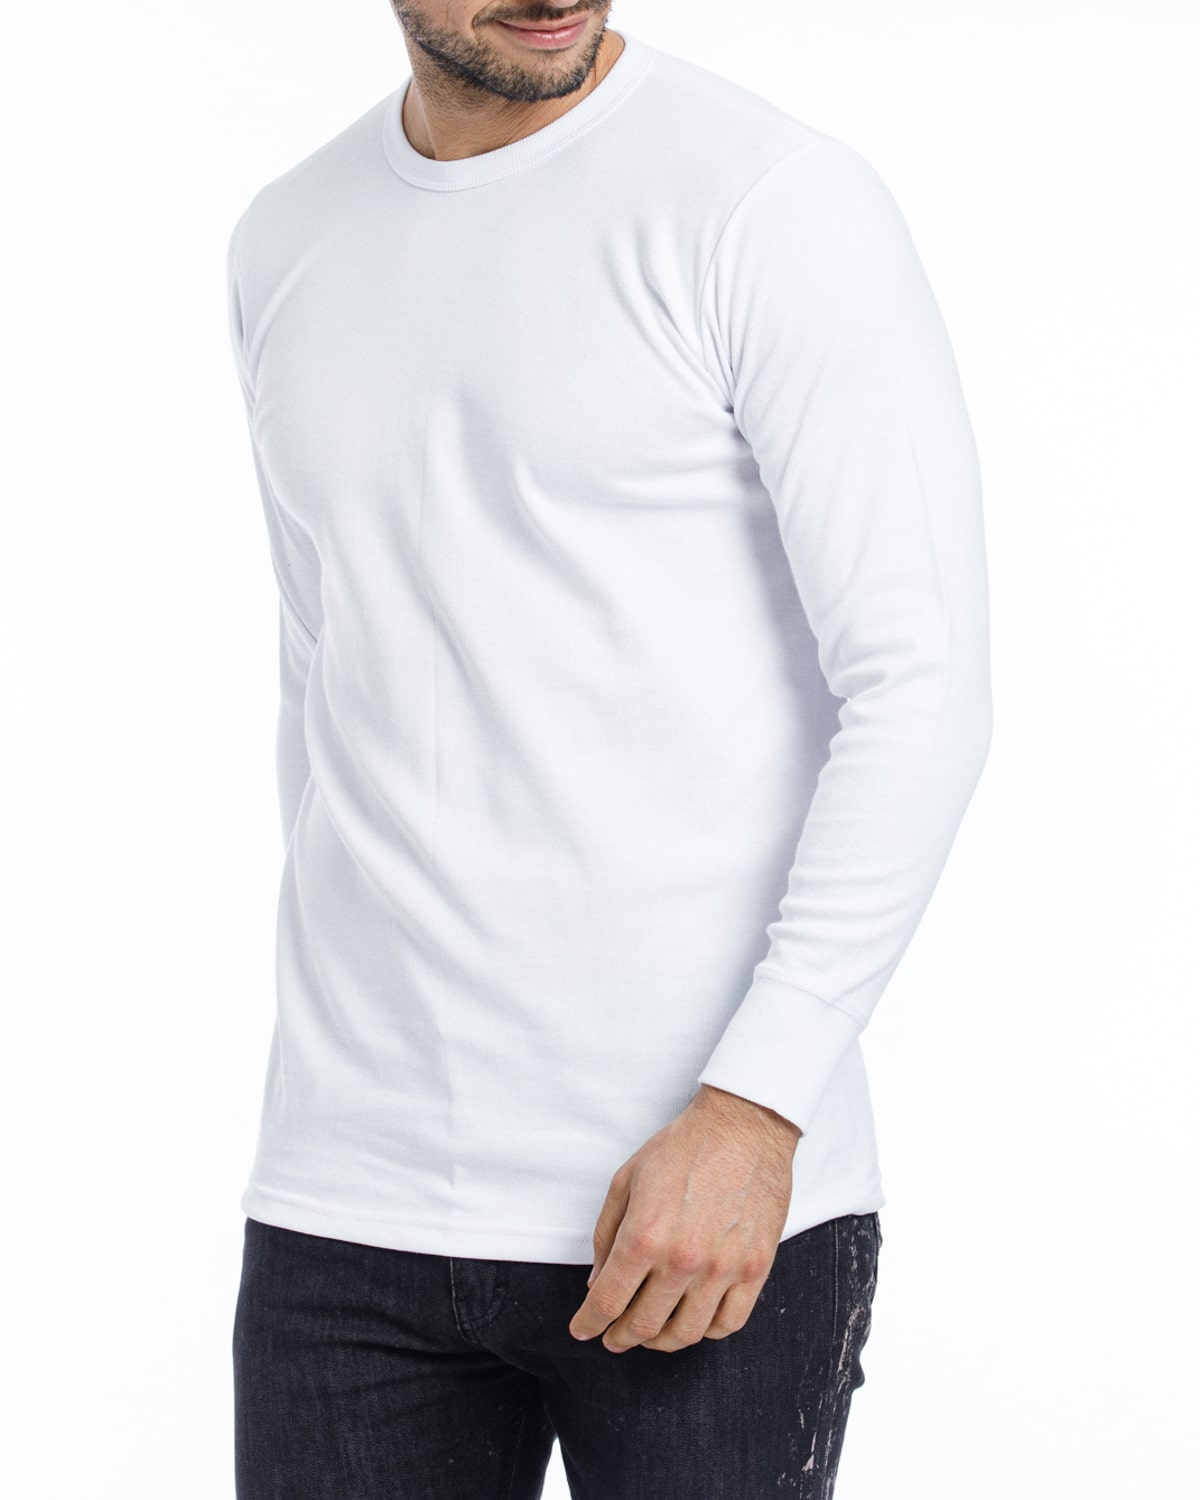 Camiseta Interlock 173